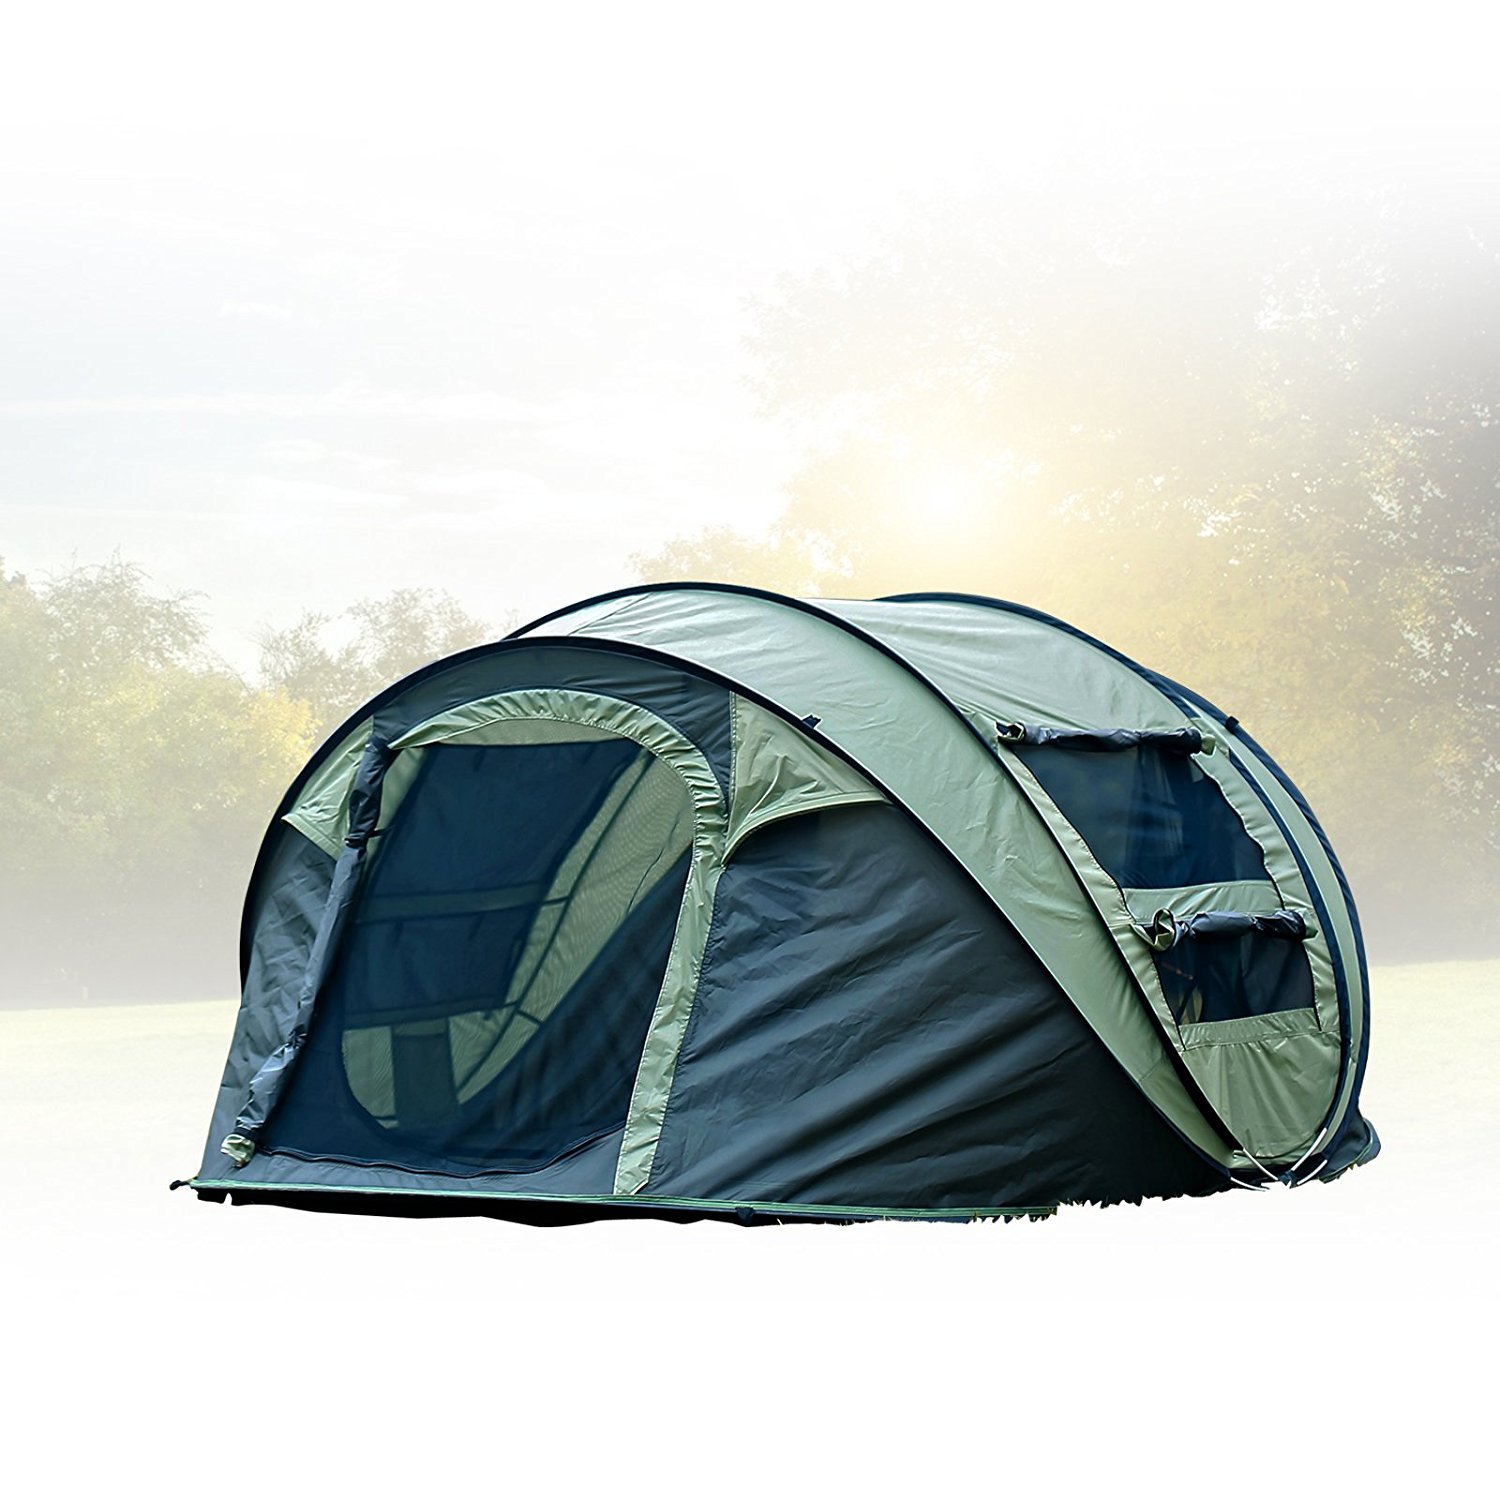 Choice for the Best 4 Person Tent